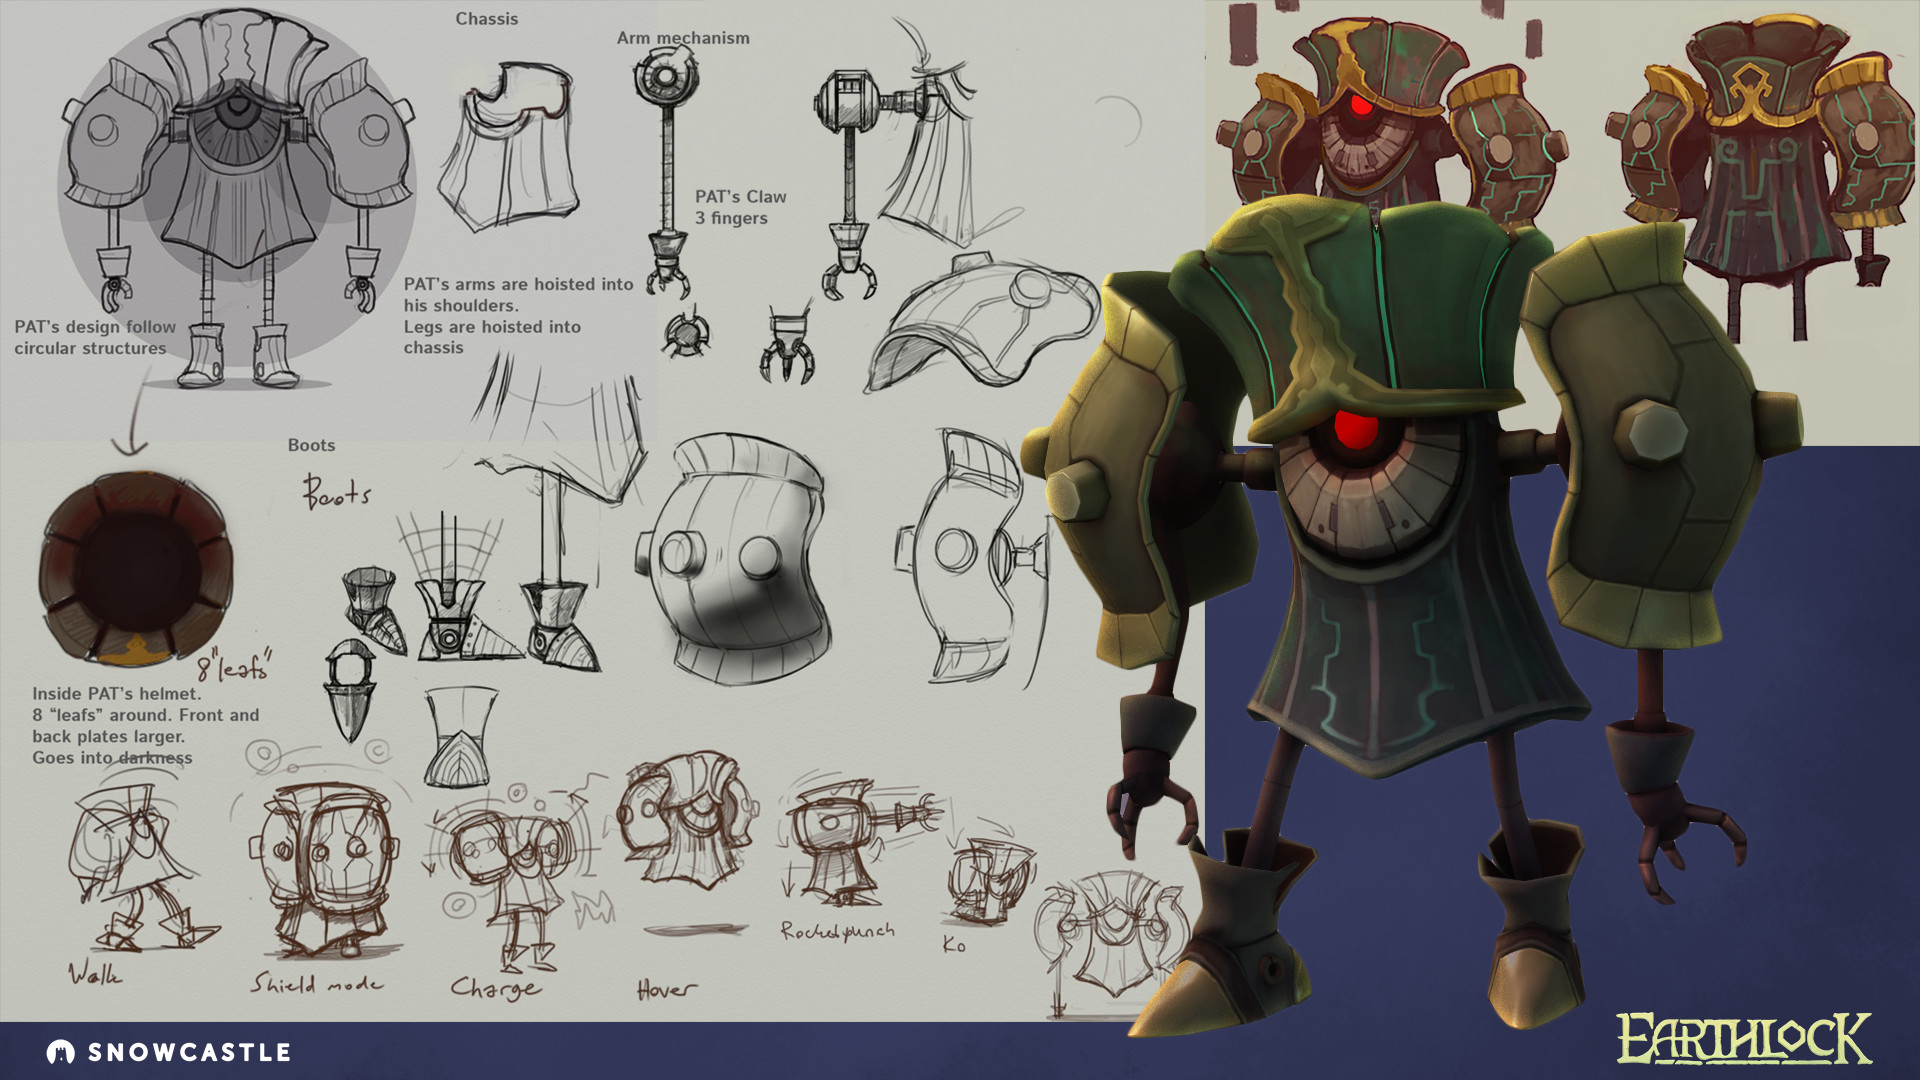 The original PAT design and sketches.